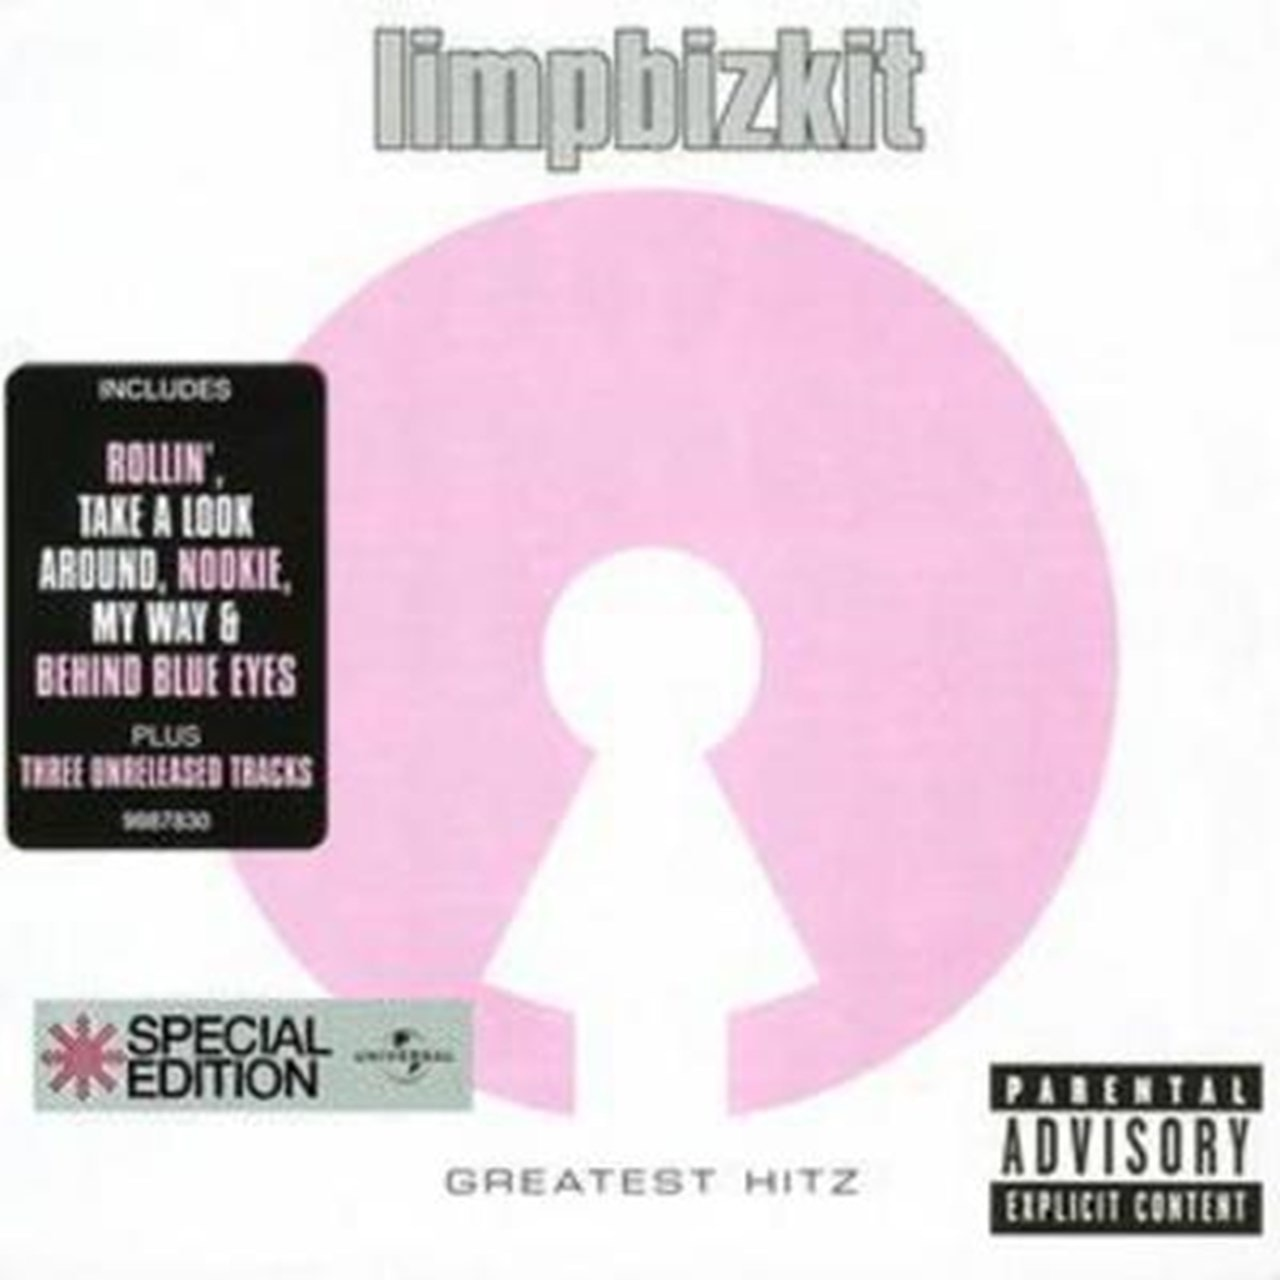 Greatest Hitz [special Edition] - 1